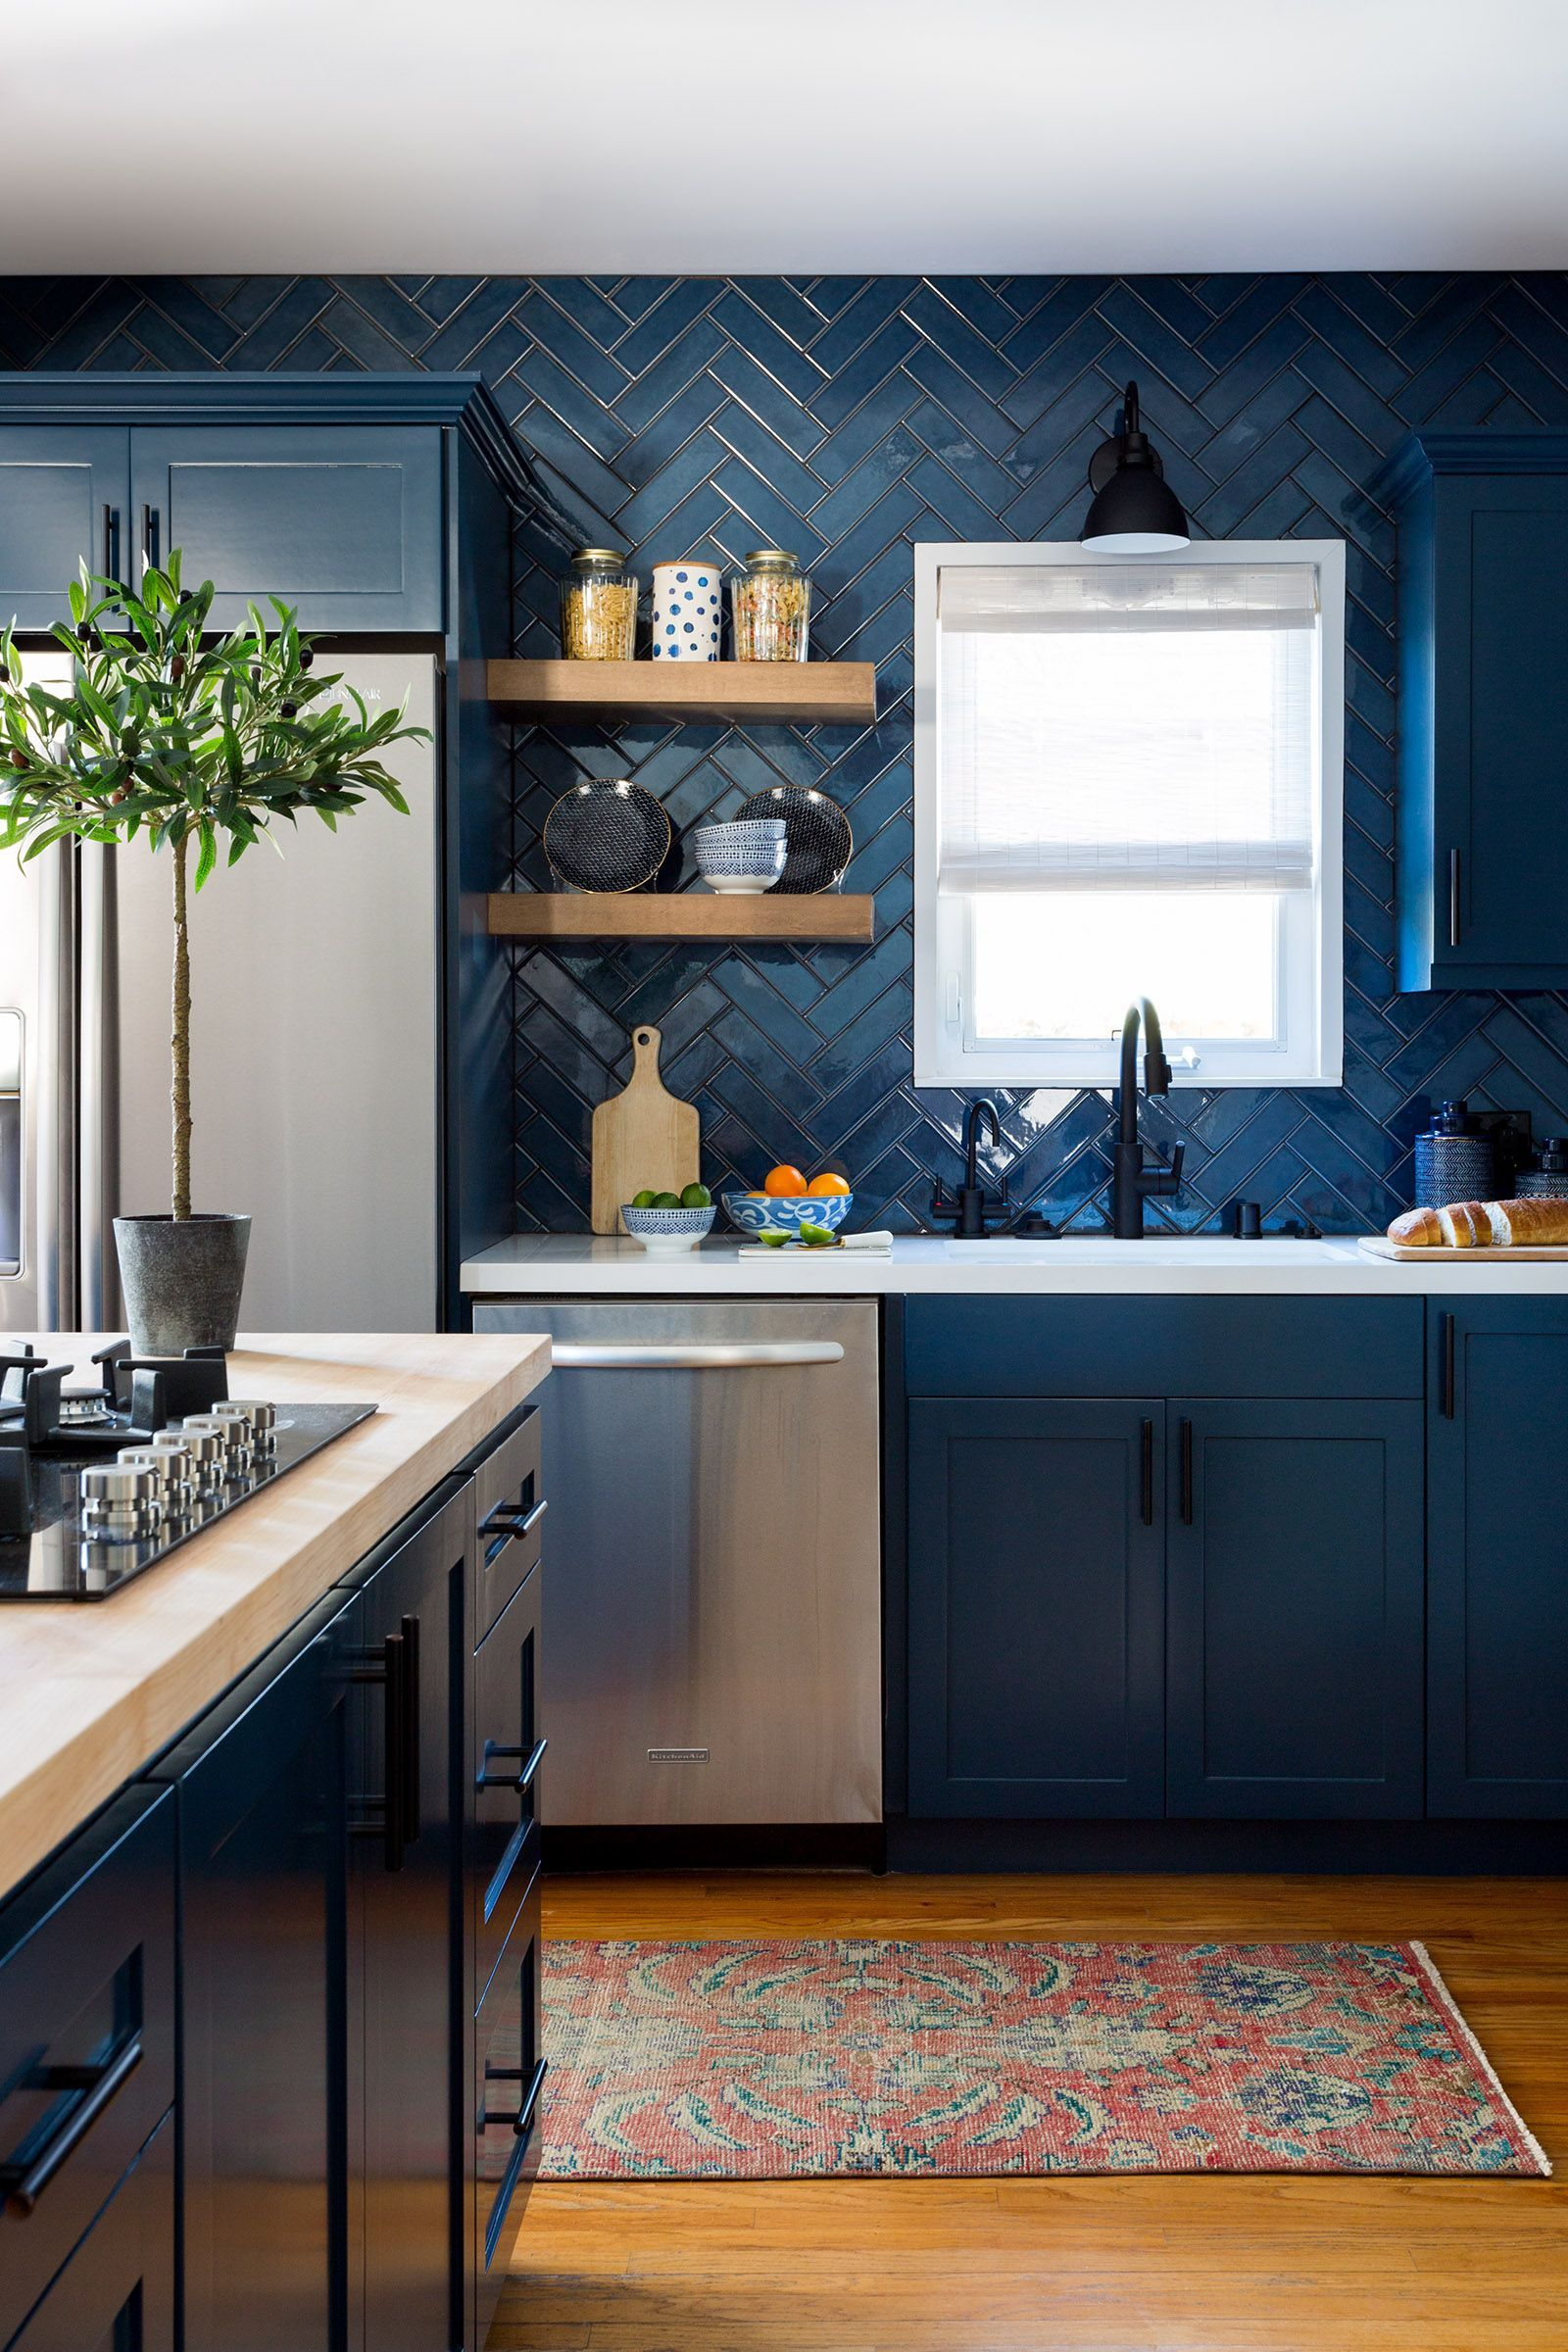 dc40e86be08 Dark blue kitchen cabinets with blue tile backsplash